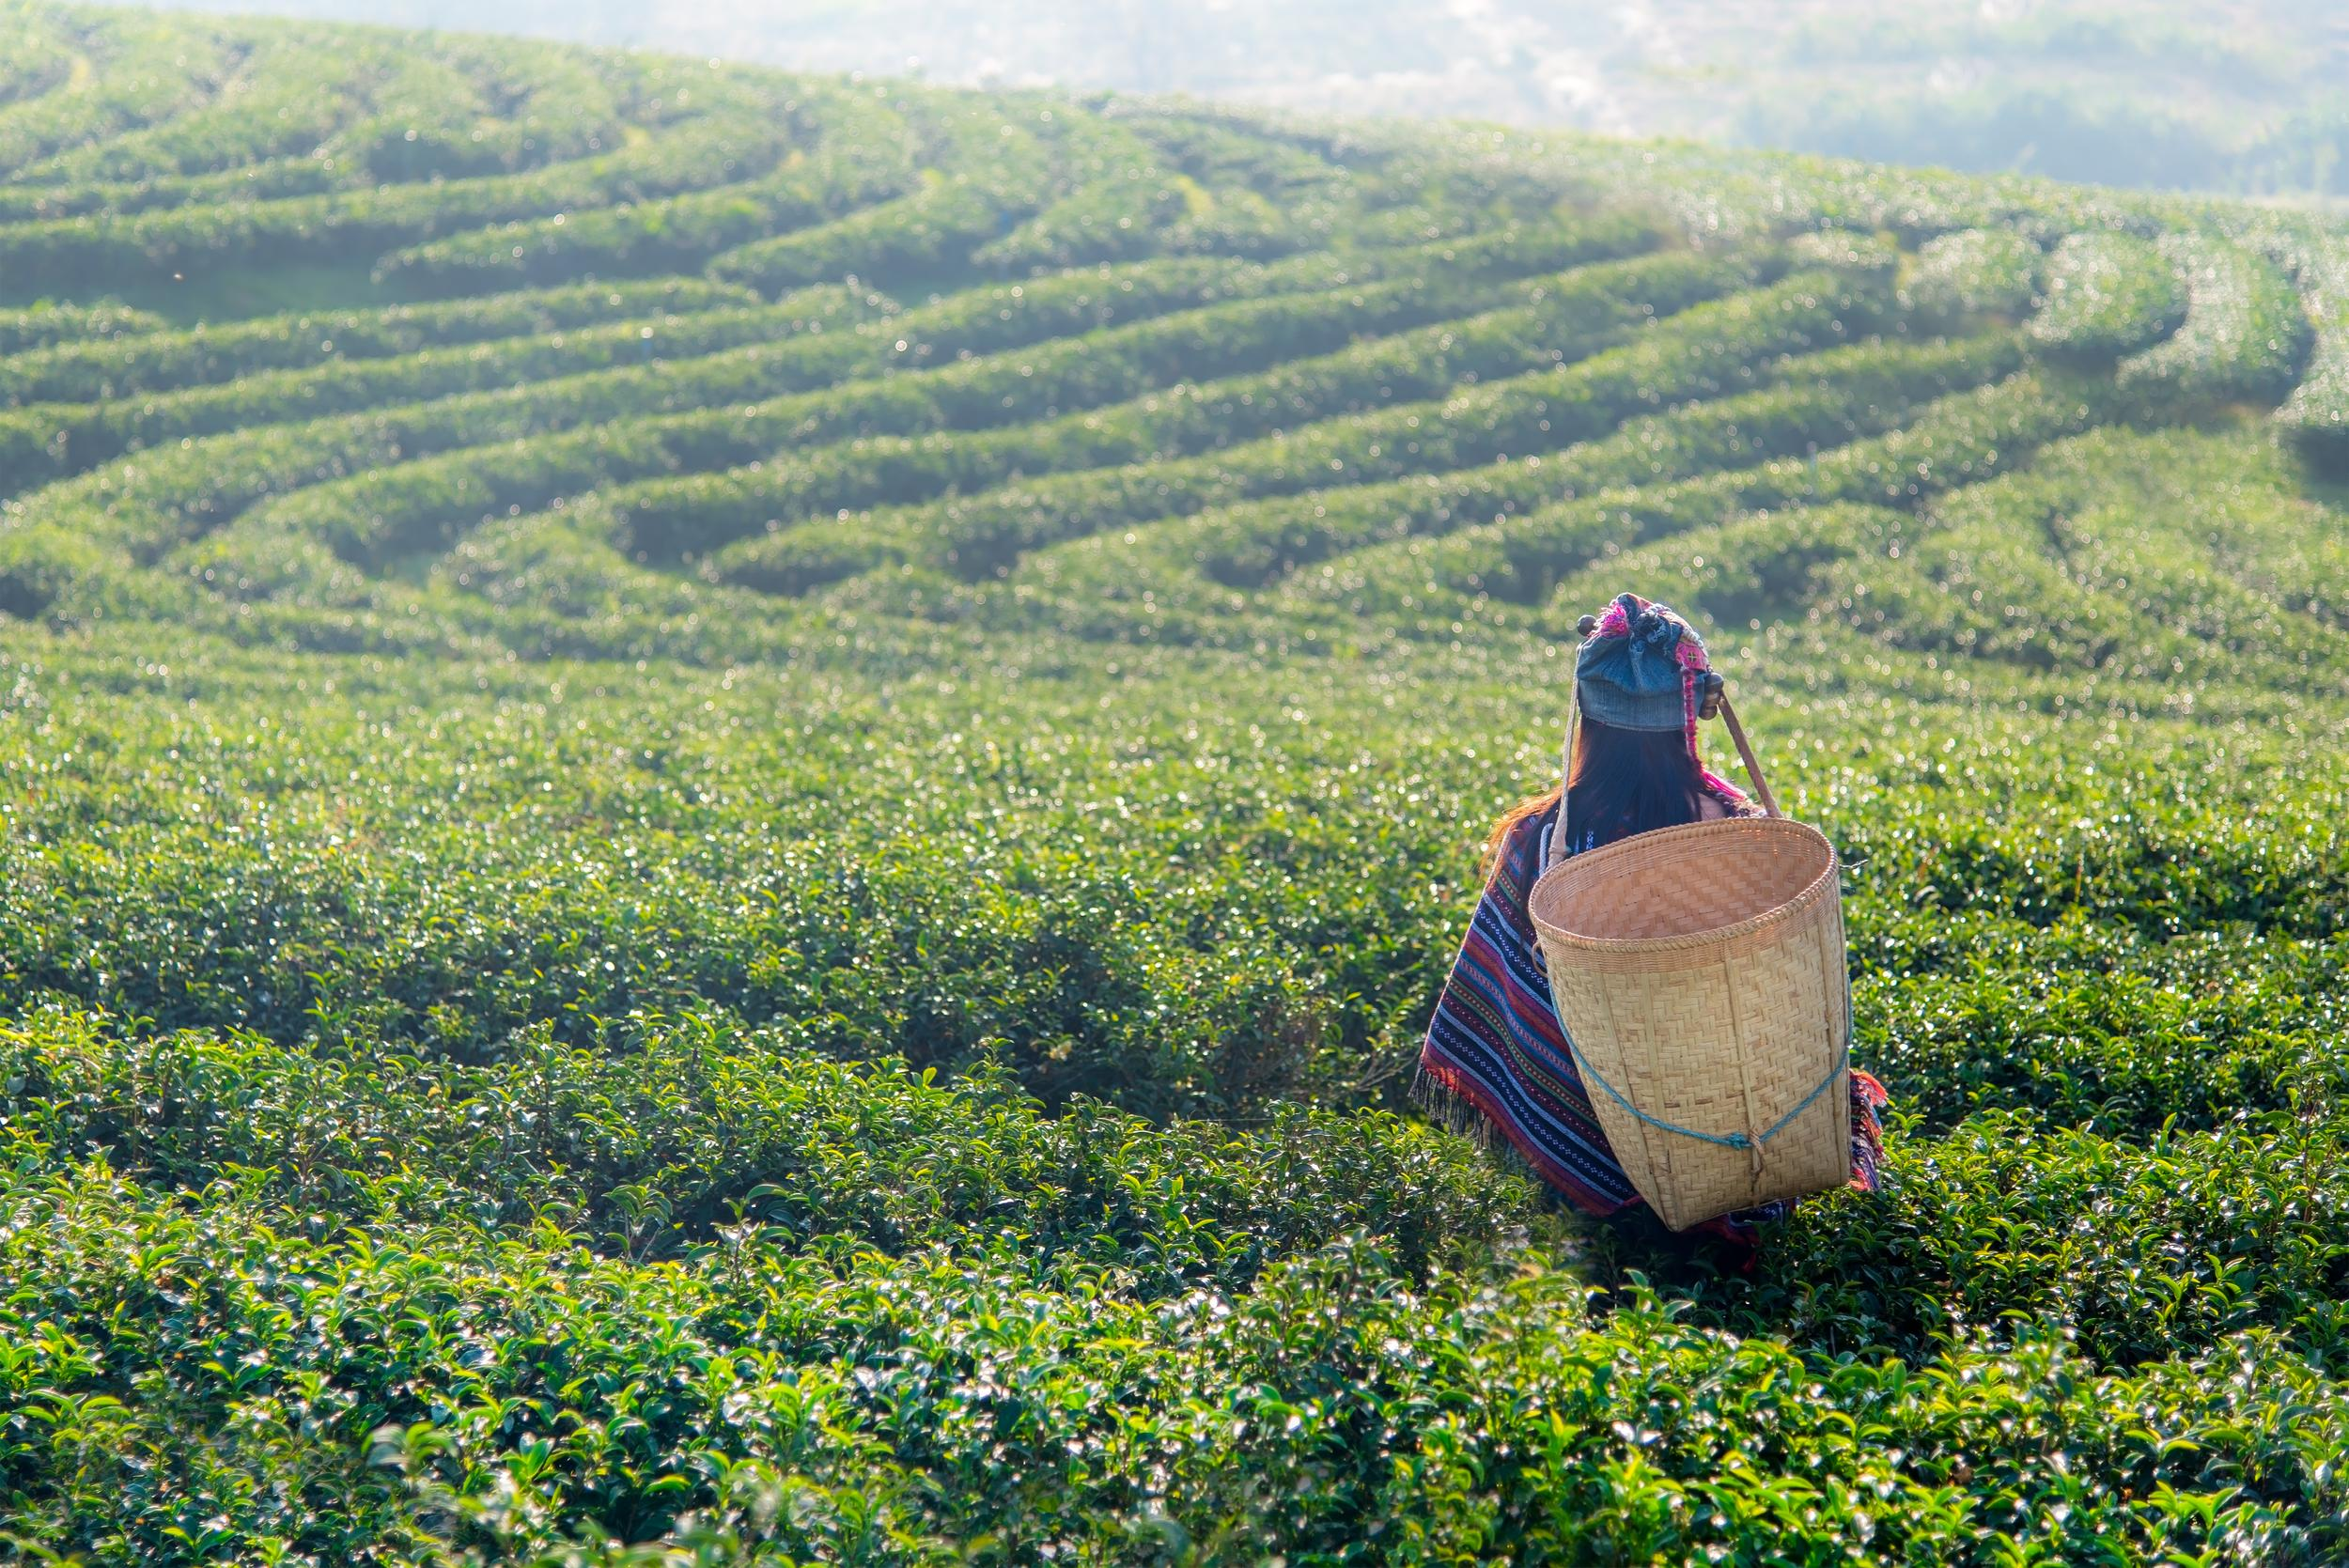 Asia worker women were picking tea leaves for traditions at a tea plantation in the garden nature. Lifestyle Concept